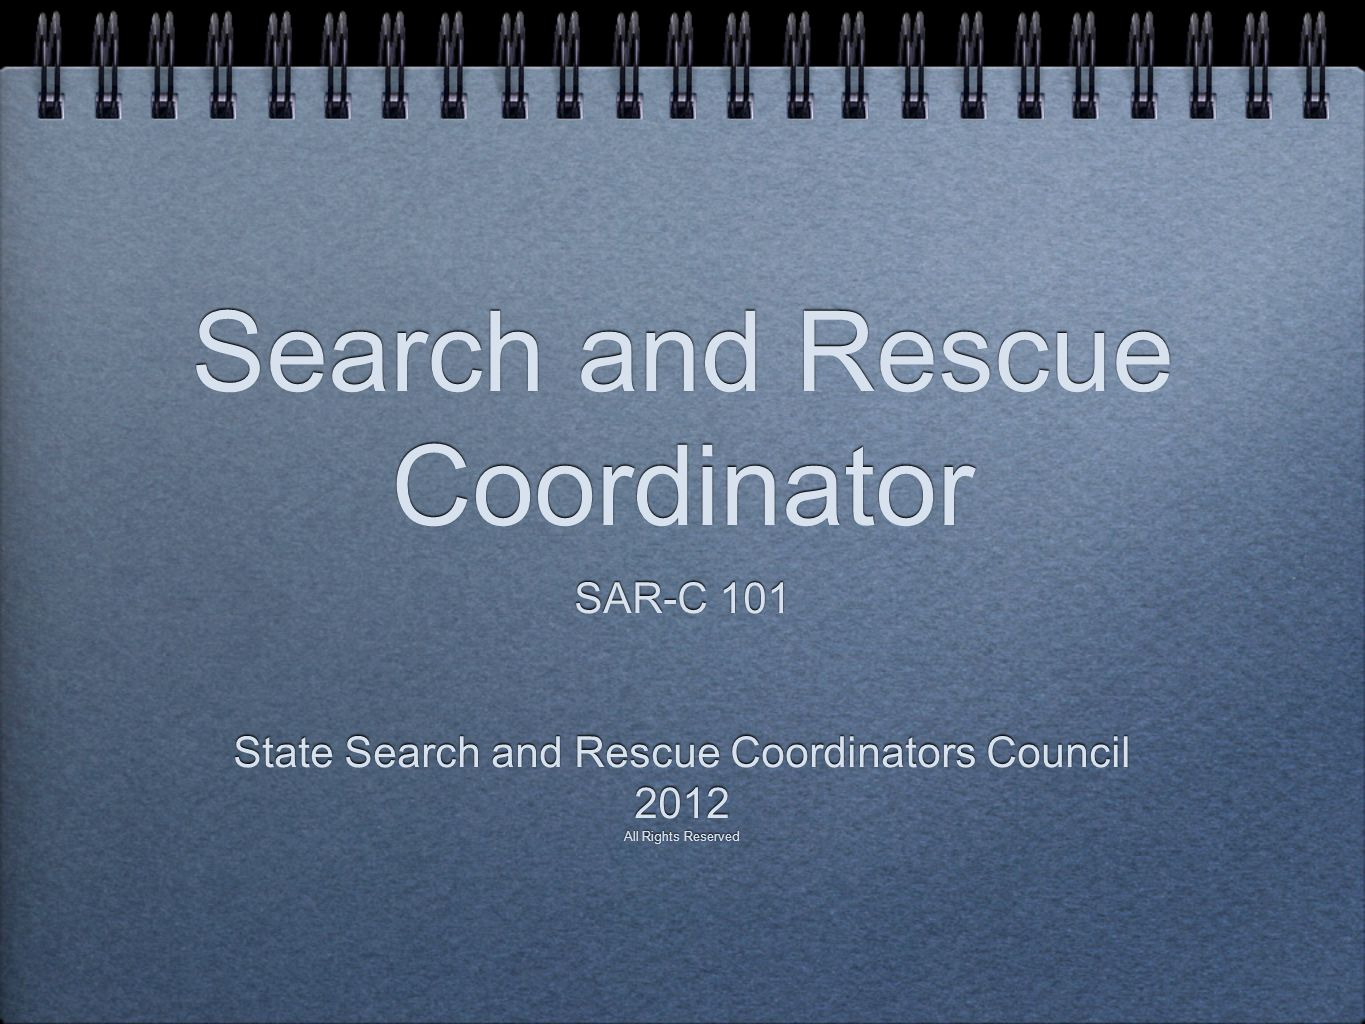 Search and Rescue Coordinator SAR-C 101 State Search and Rescue Coordinators Council 2012 All Rights Reserved SAR-C 101 State Search and Rescue Coordinators Council 2012 All Rights Reserved